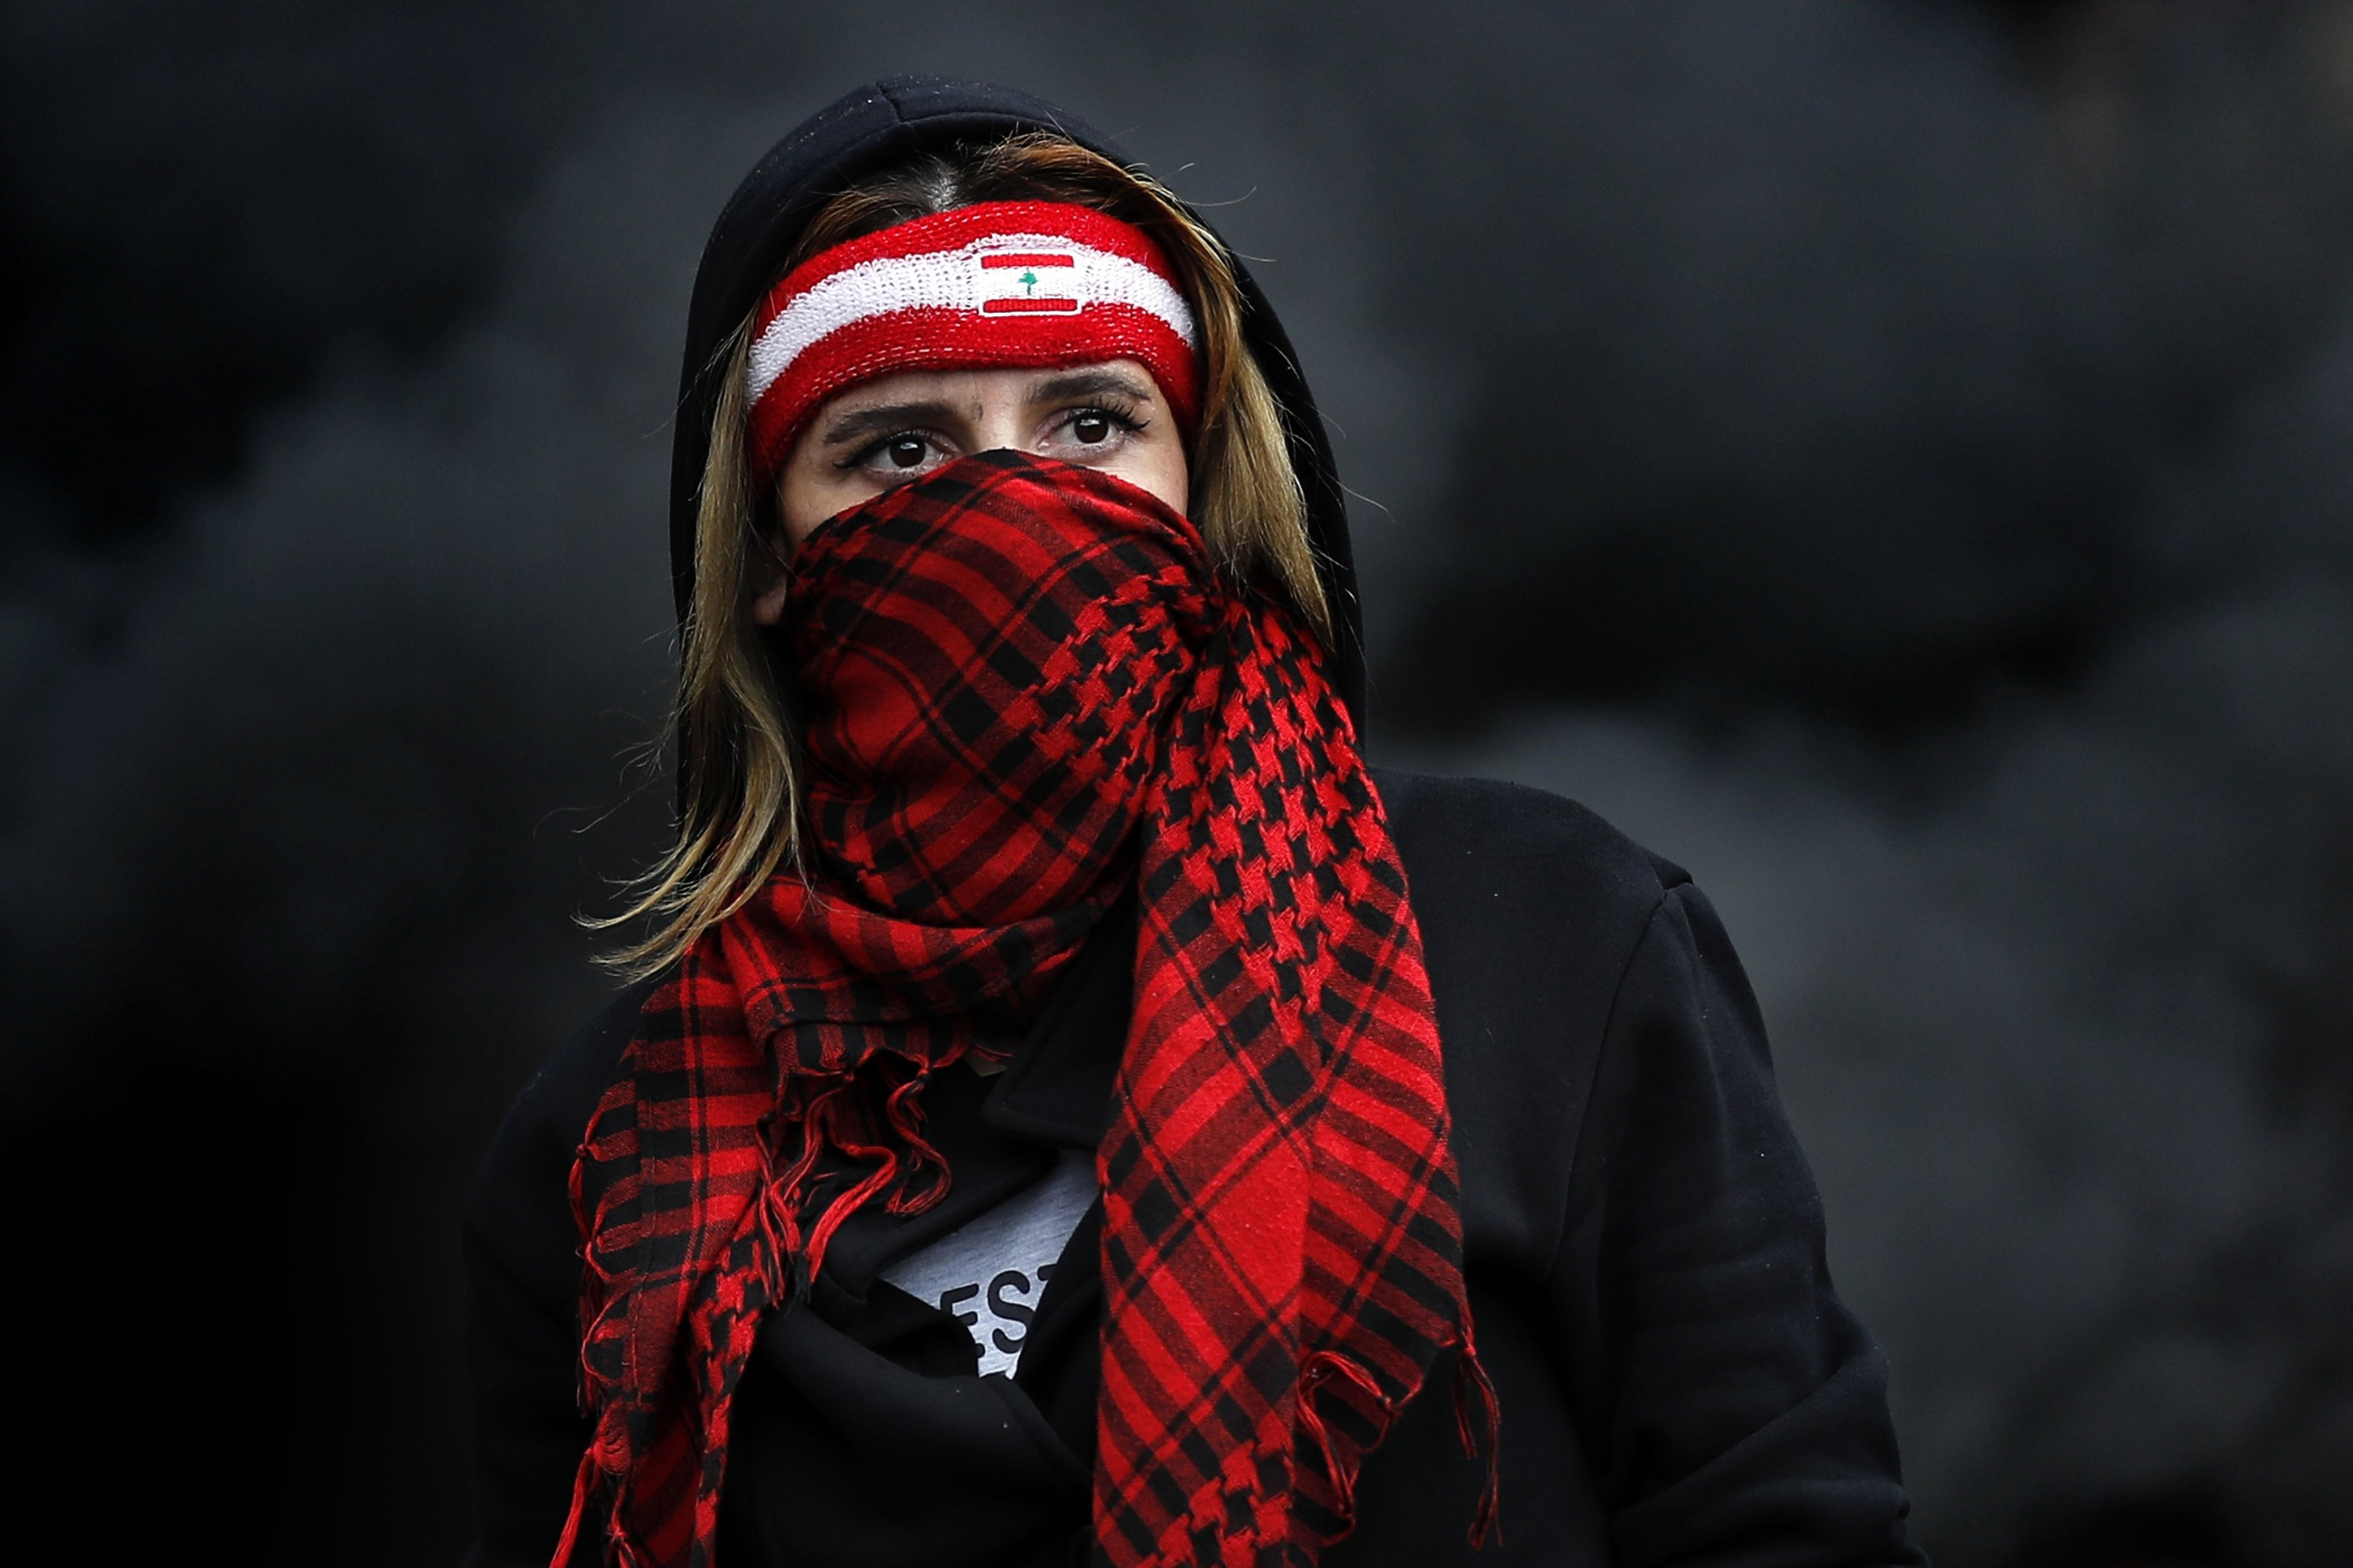 A protester covers her face with a scarf as she blocks a main highway during a protest in the town of Zouk Mosbeh, north of Beirut, Lebanon, March 8, 2021. (AP Photo)